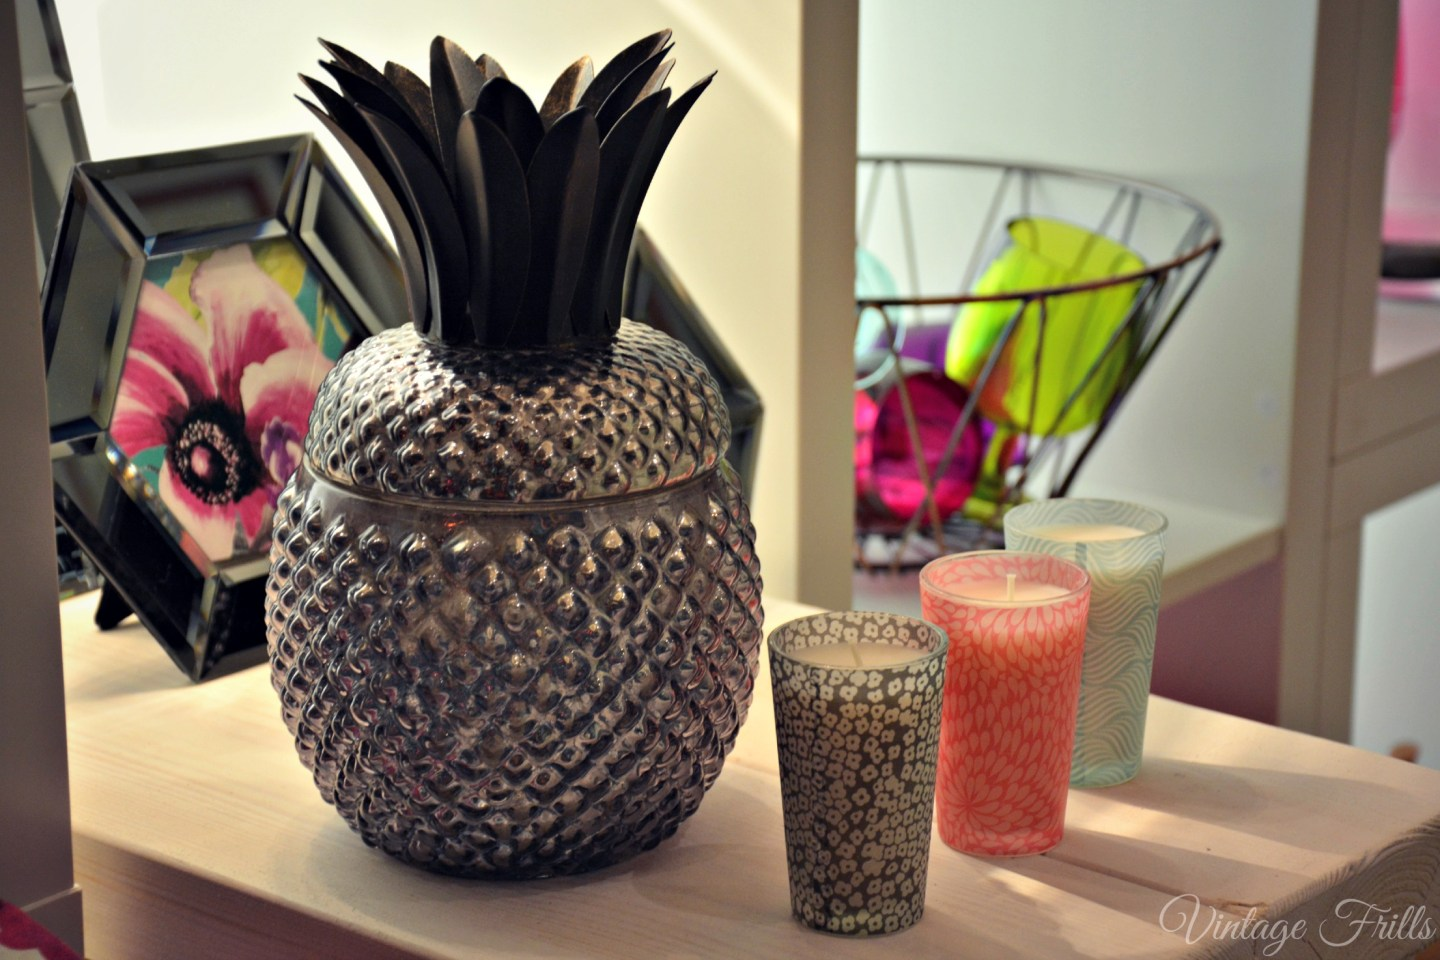 Next Summer 15 Press Day Pineapple Ice Bucket